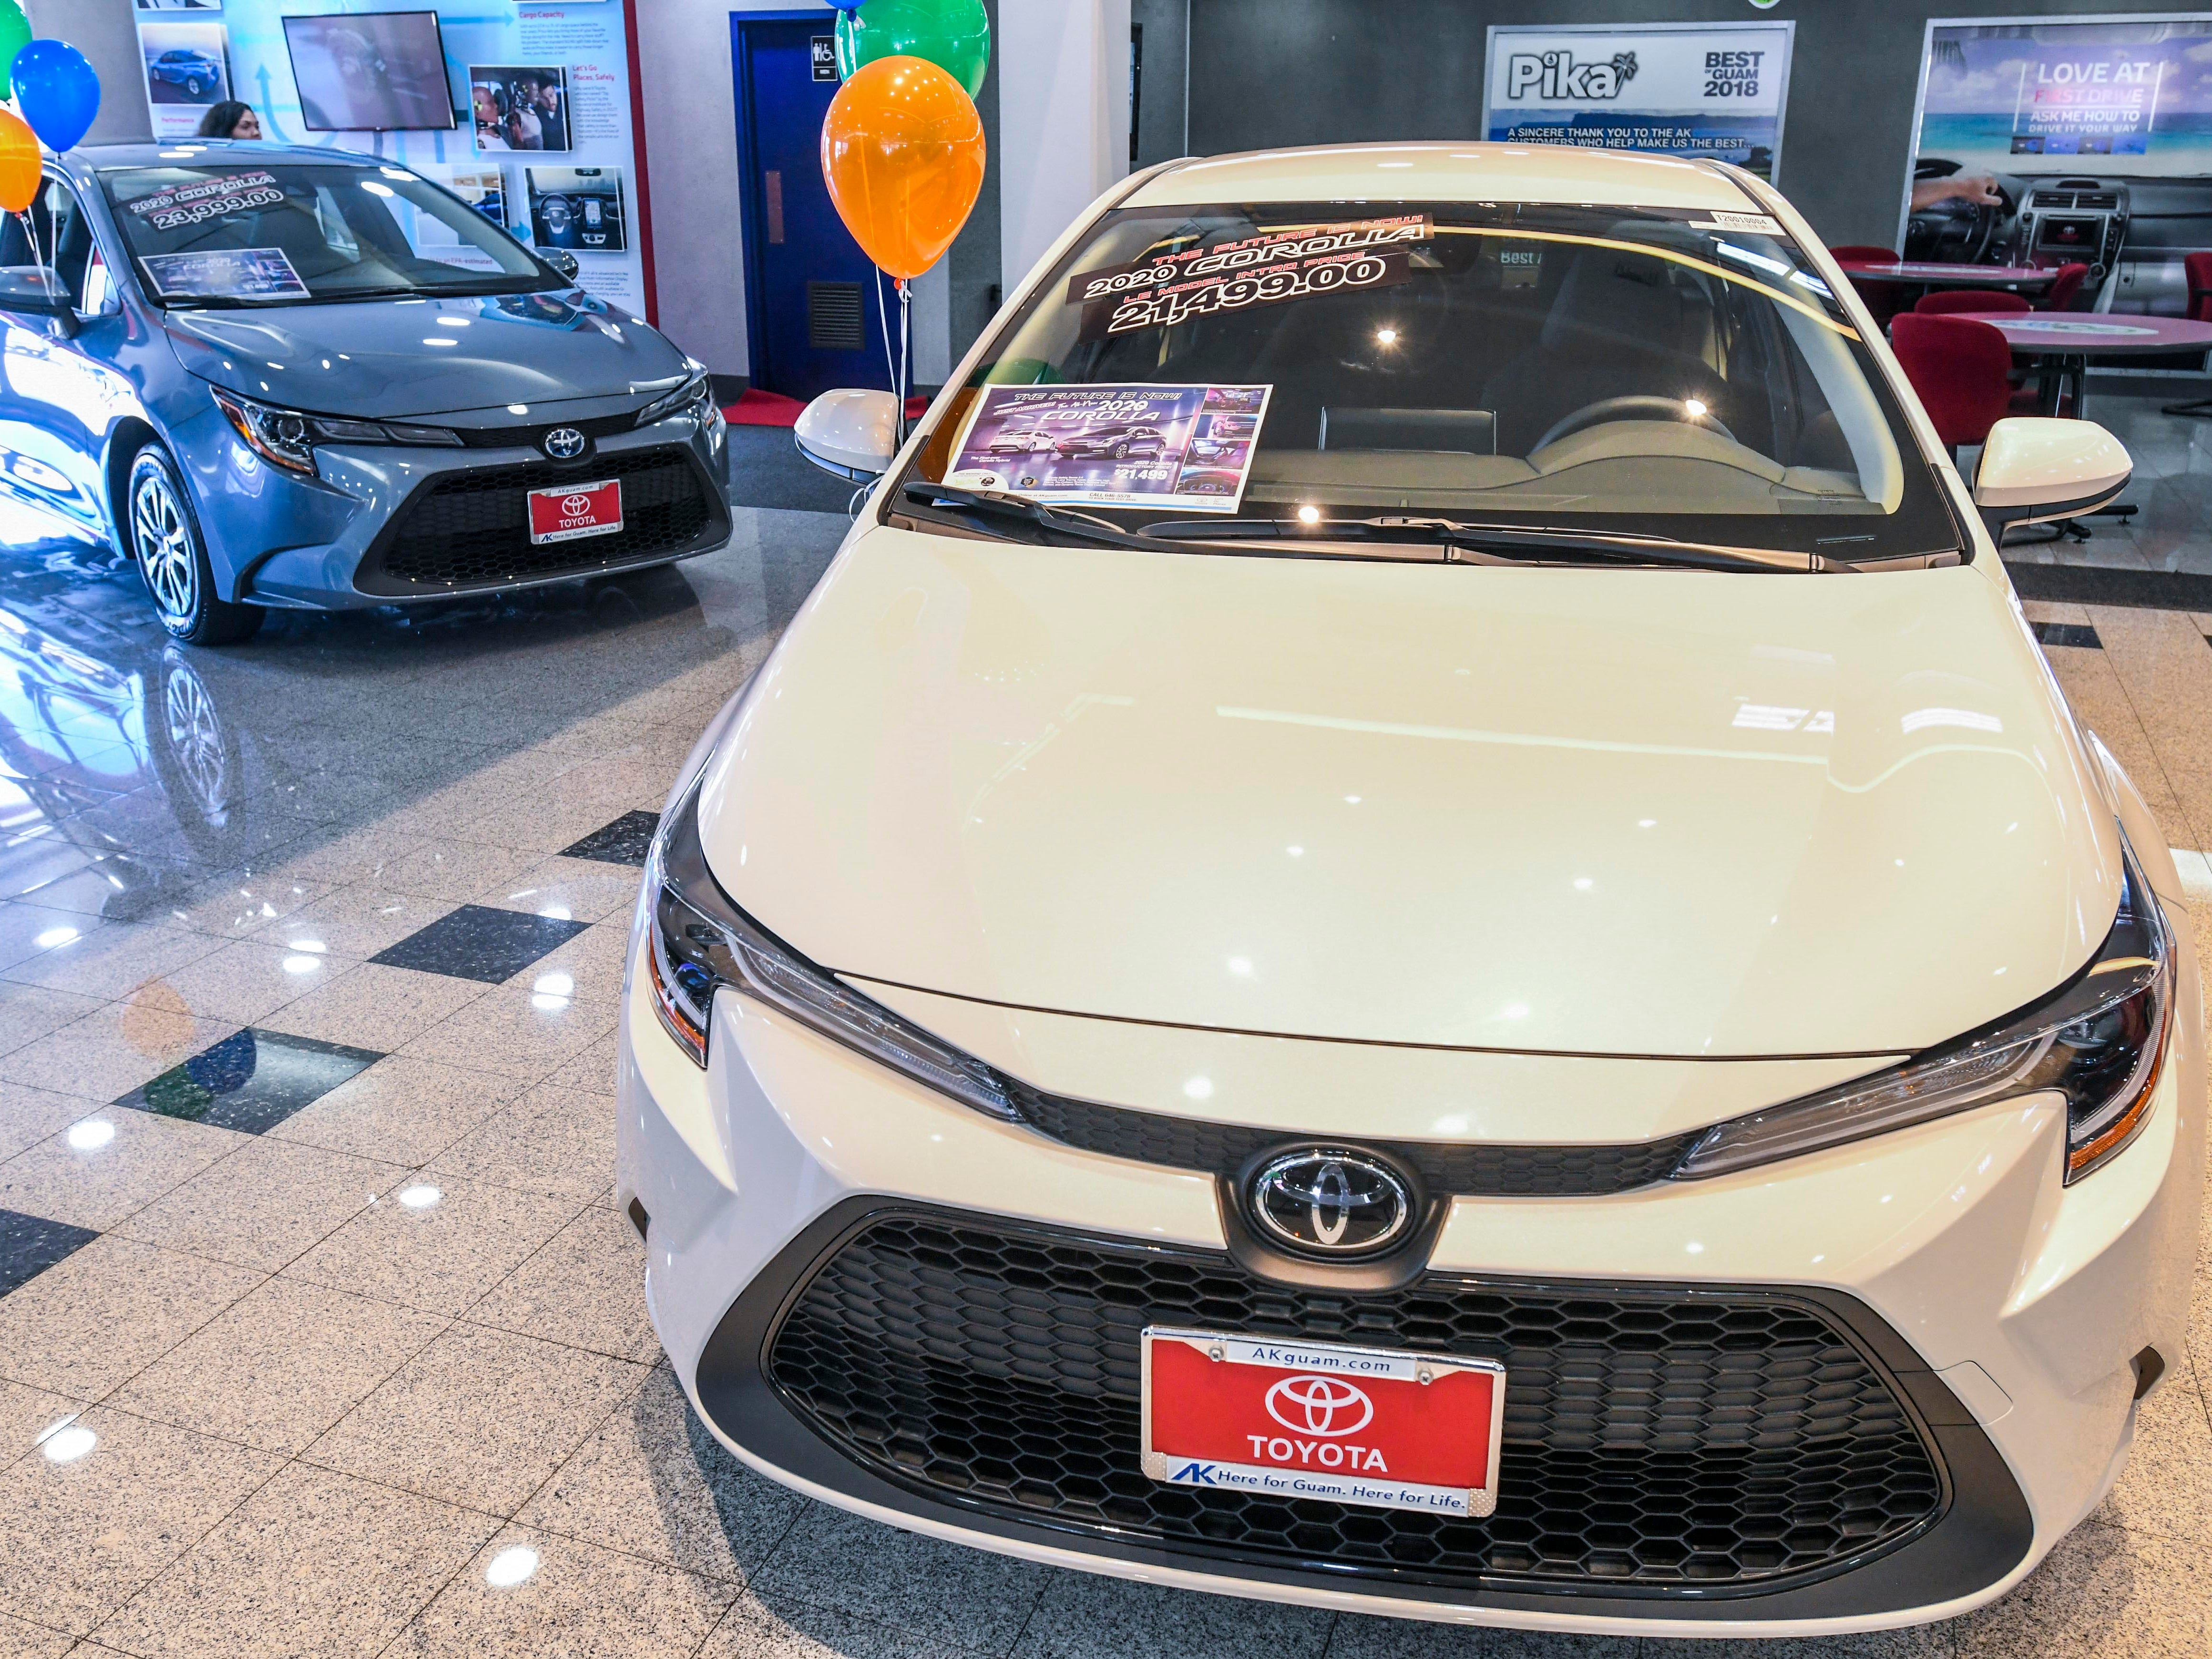 Two models of the newly redesigned 2020 Toyota Corolla, as seen on the showroom floor of the Atkins Kroll dealership in Tamuning, on Saturday, Feb. 9, 2019. Atkins Kroll has rolled out three models of the sedan: Toyota Corolla LE (Luxury Edition), front; the Toyota Corolla HE (Hybrid Edition), back, and a Toyota Corolla SE (Sport Edition), not seen.